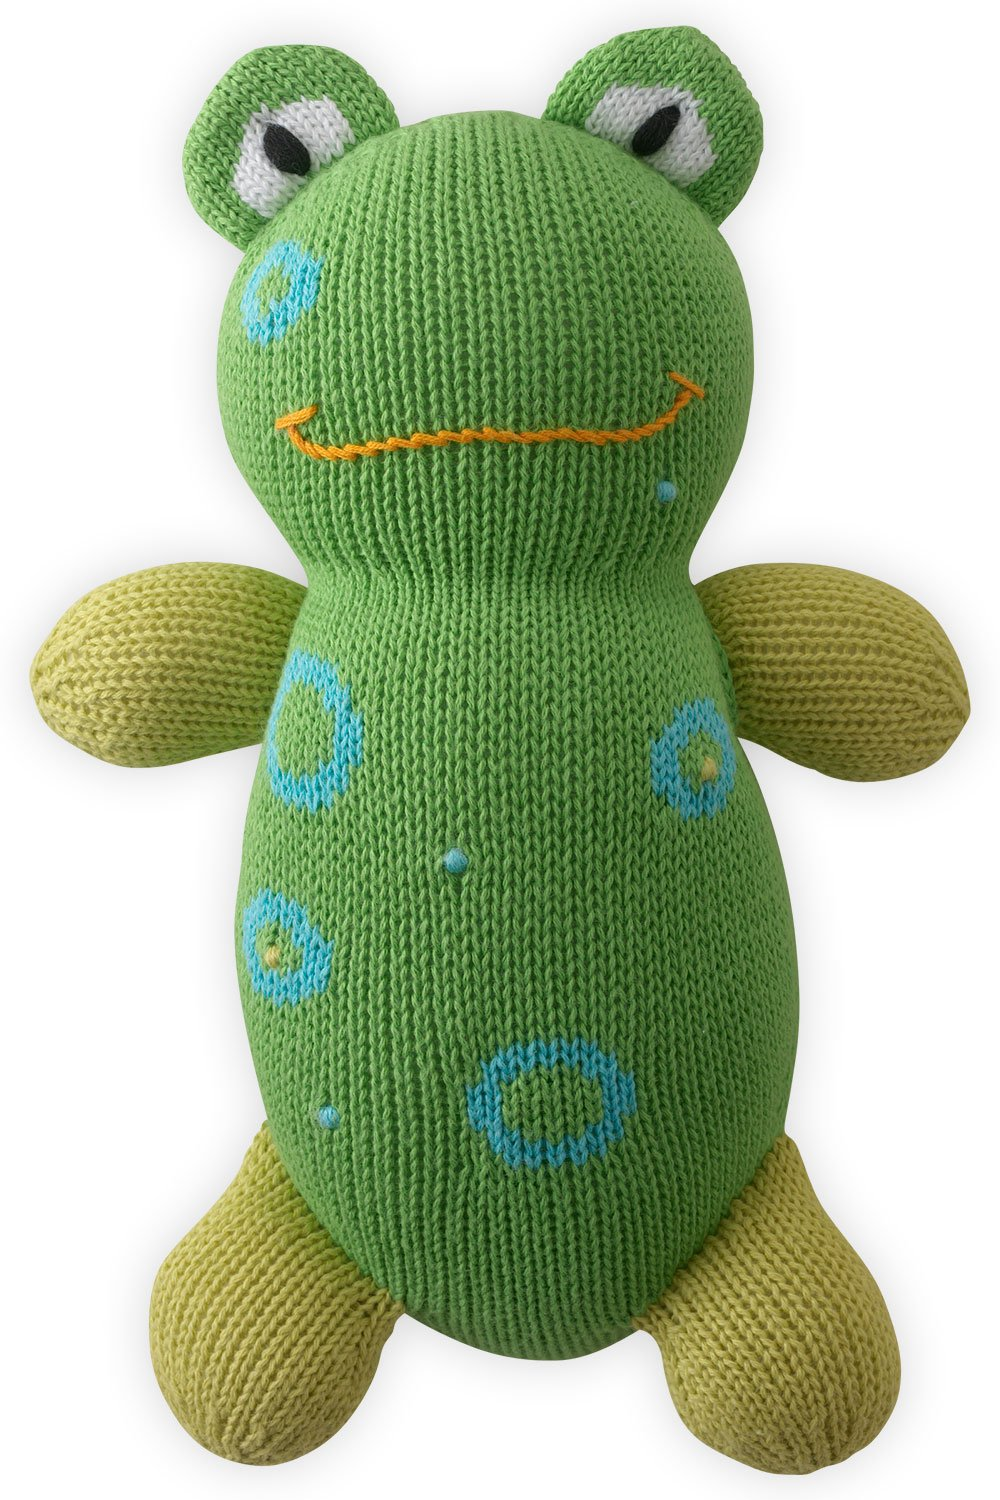 Joobles Fair Trade Organic Stuffed Animal - Flop the Frog by Joobles